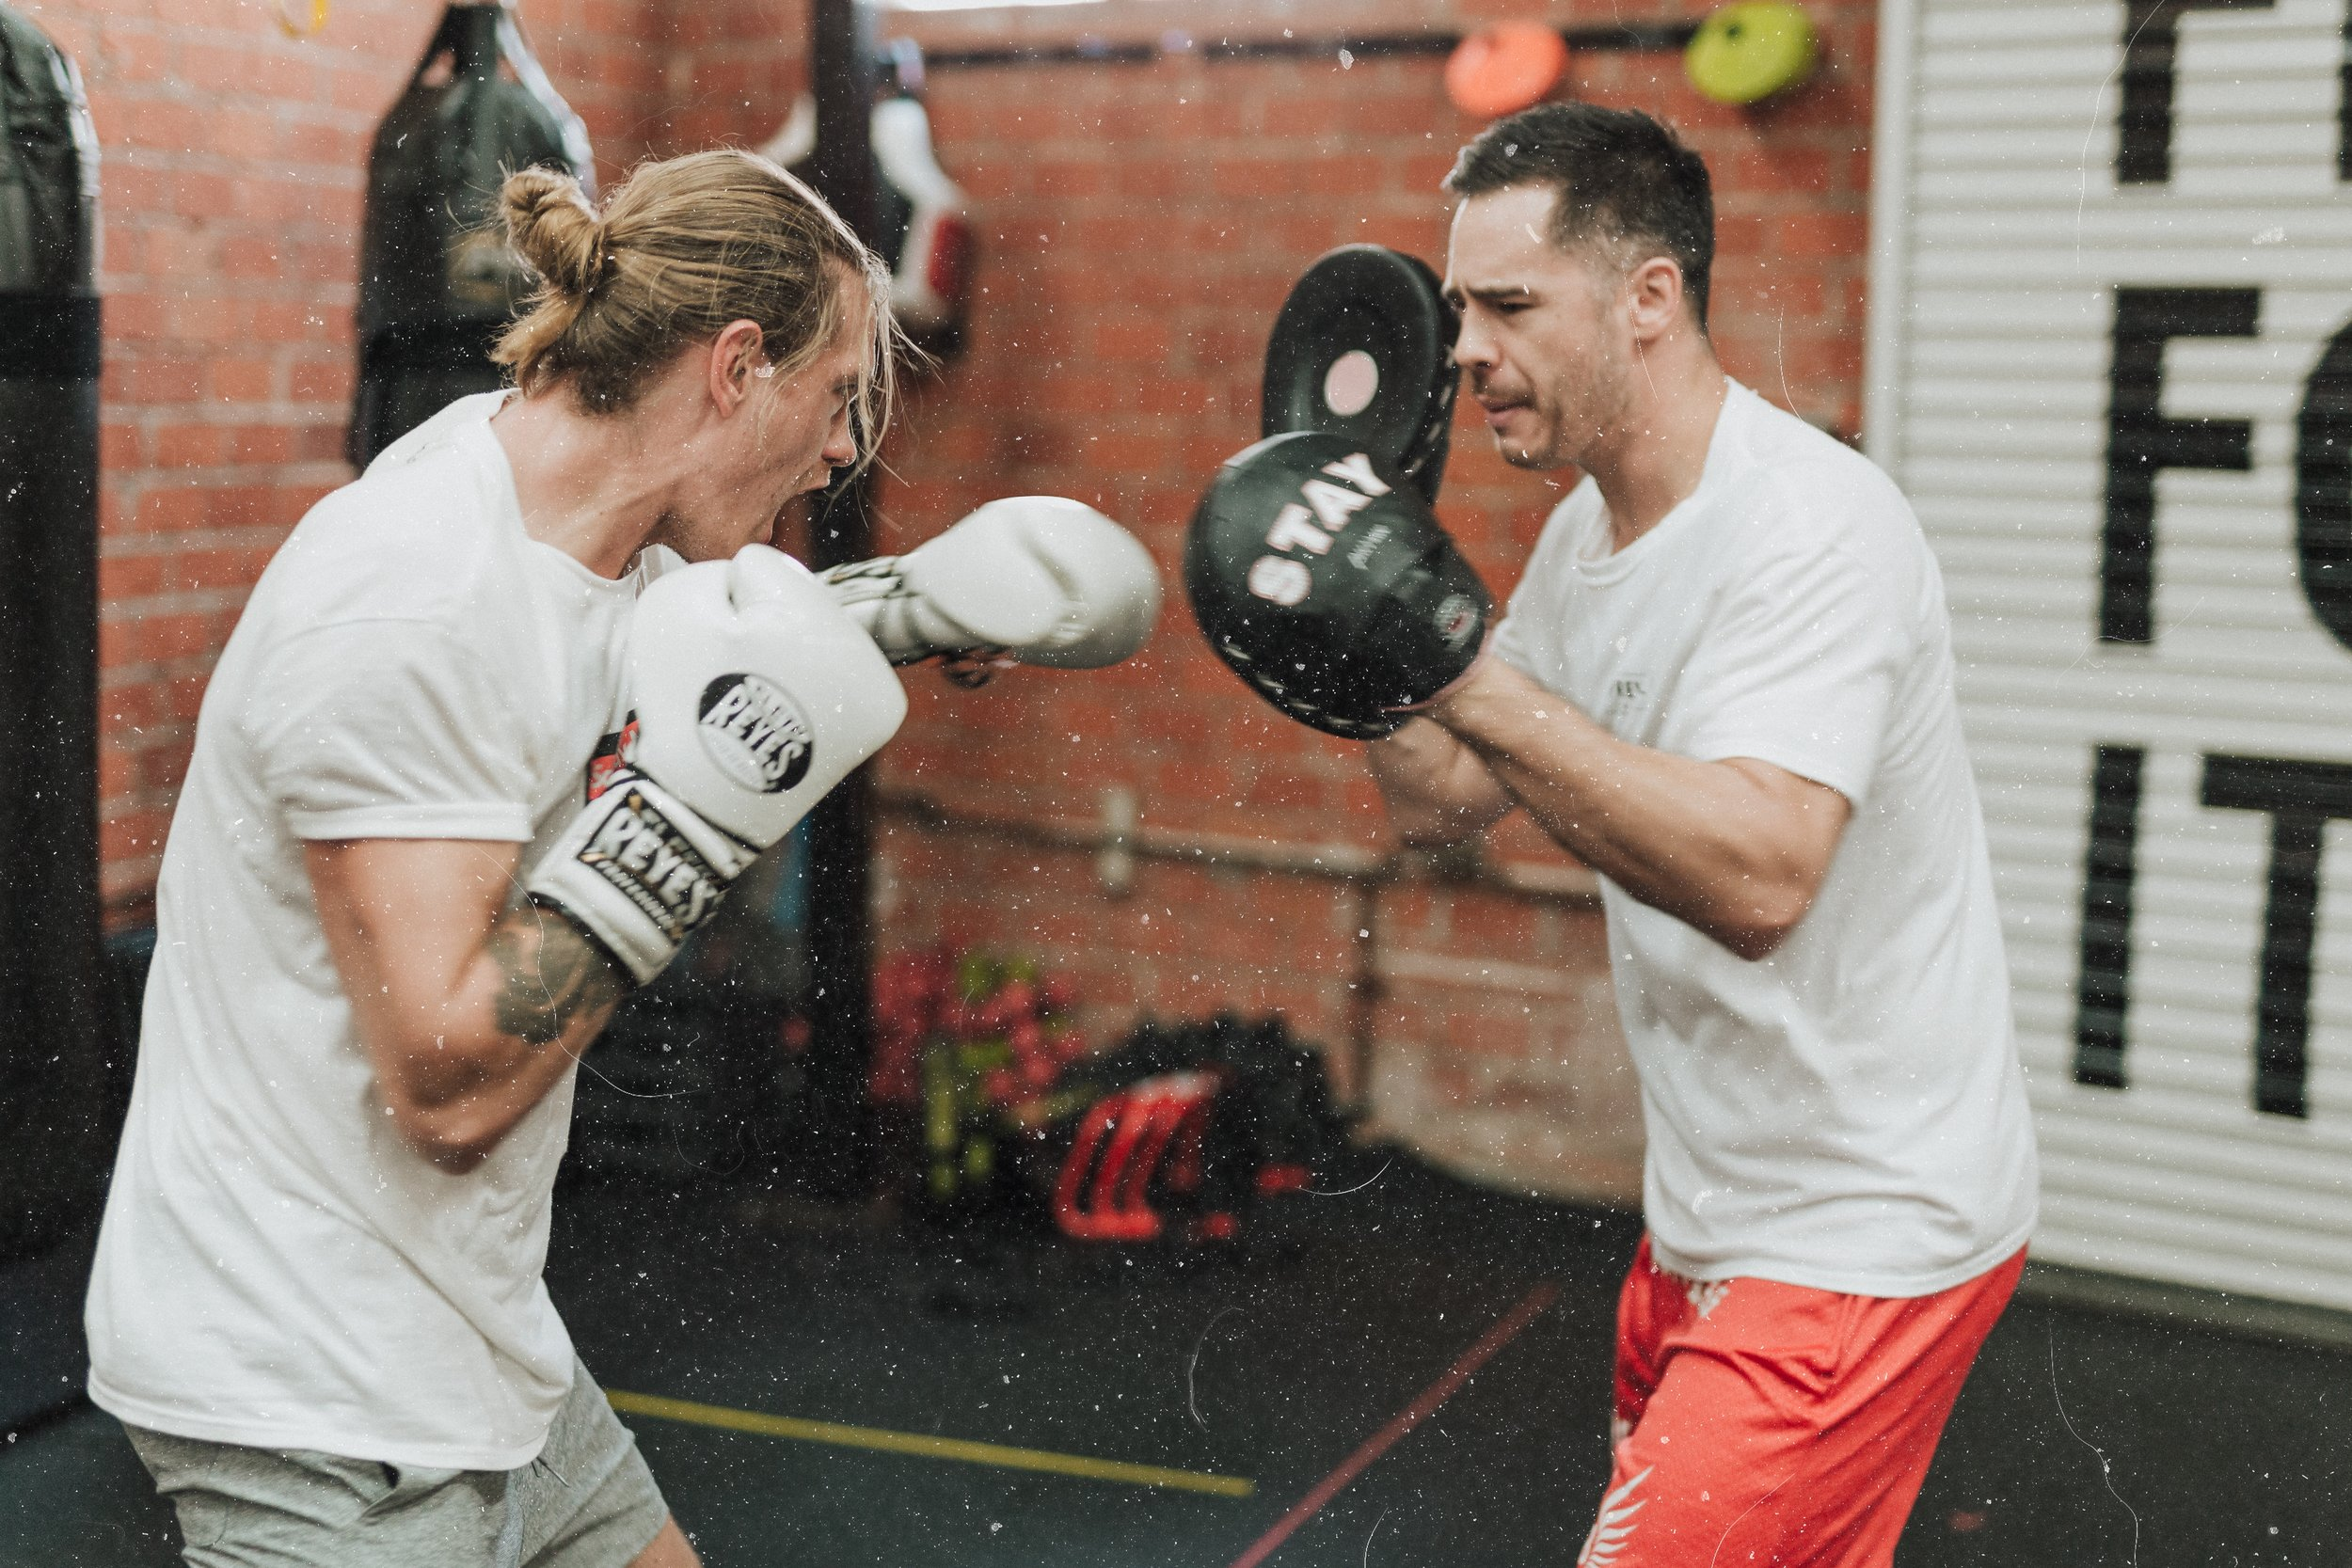 x10 Group Box Fit Classes - BoxFit is a low impact, high-energy workout that incorporates solid pad work, weight training and conditioning, functional and circuit training with an emphasis placed on boxing.